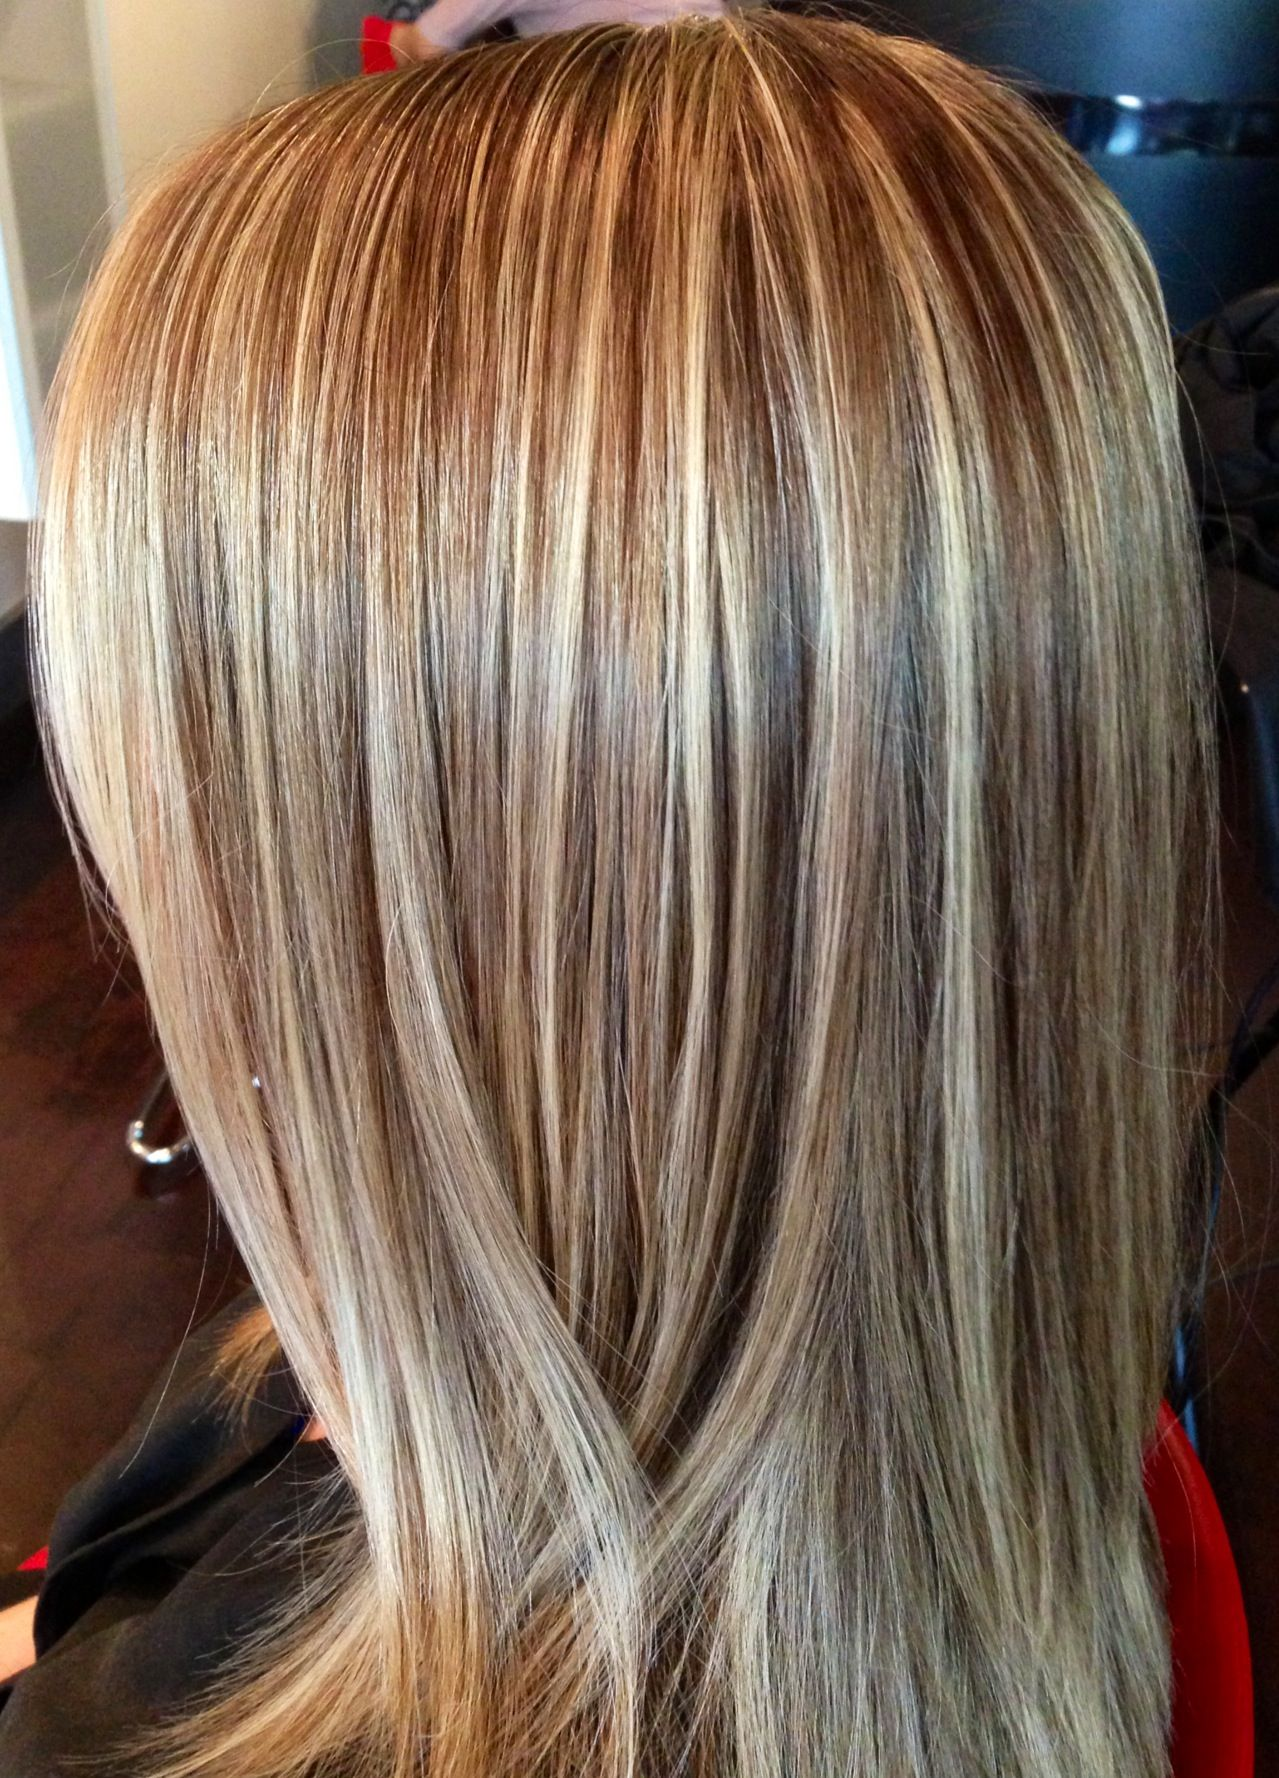 This Beautiful Hair Color Was Created By Foiling The Top Of Head In